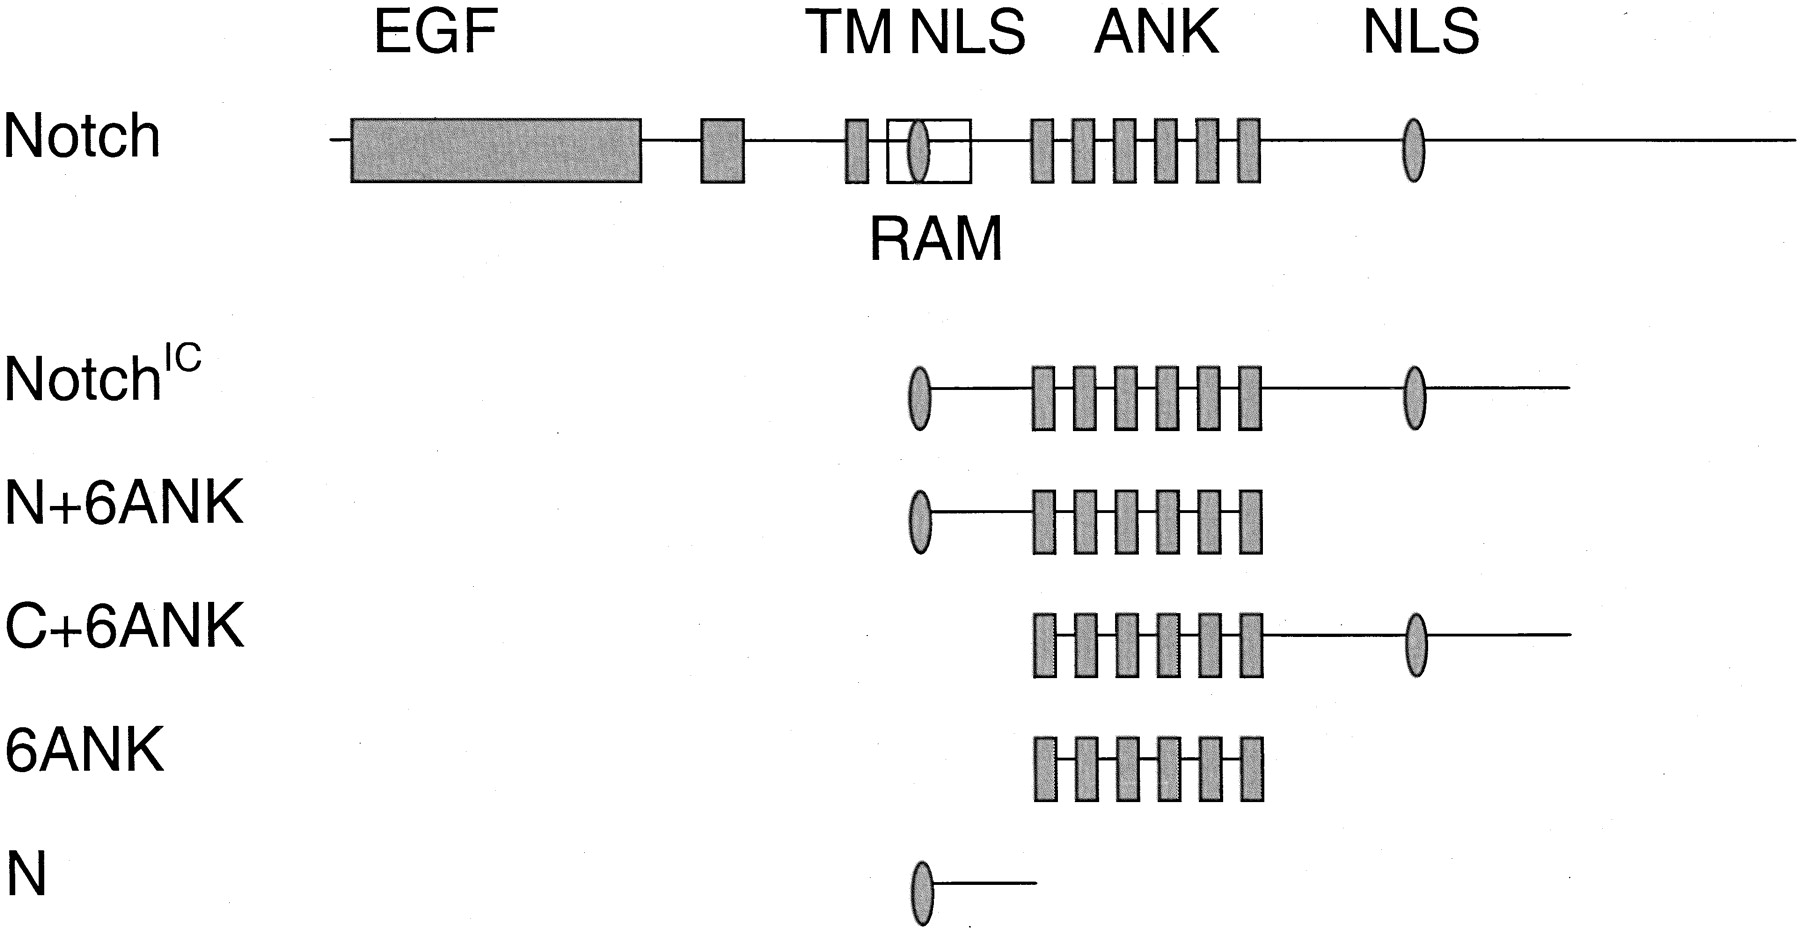 Human Notch 1 Inhibits Nf B Activity In The Nucleus Through A Direct Interaction Involving A